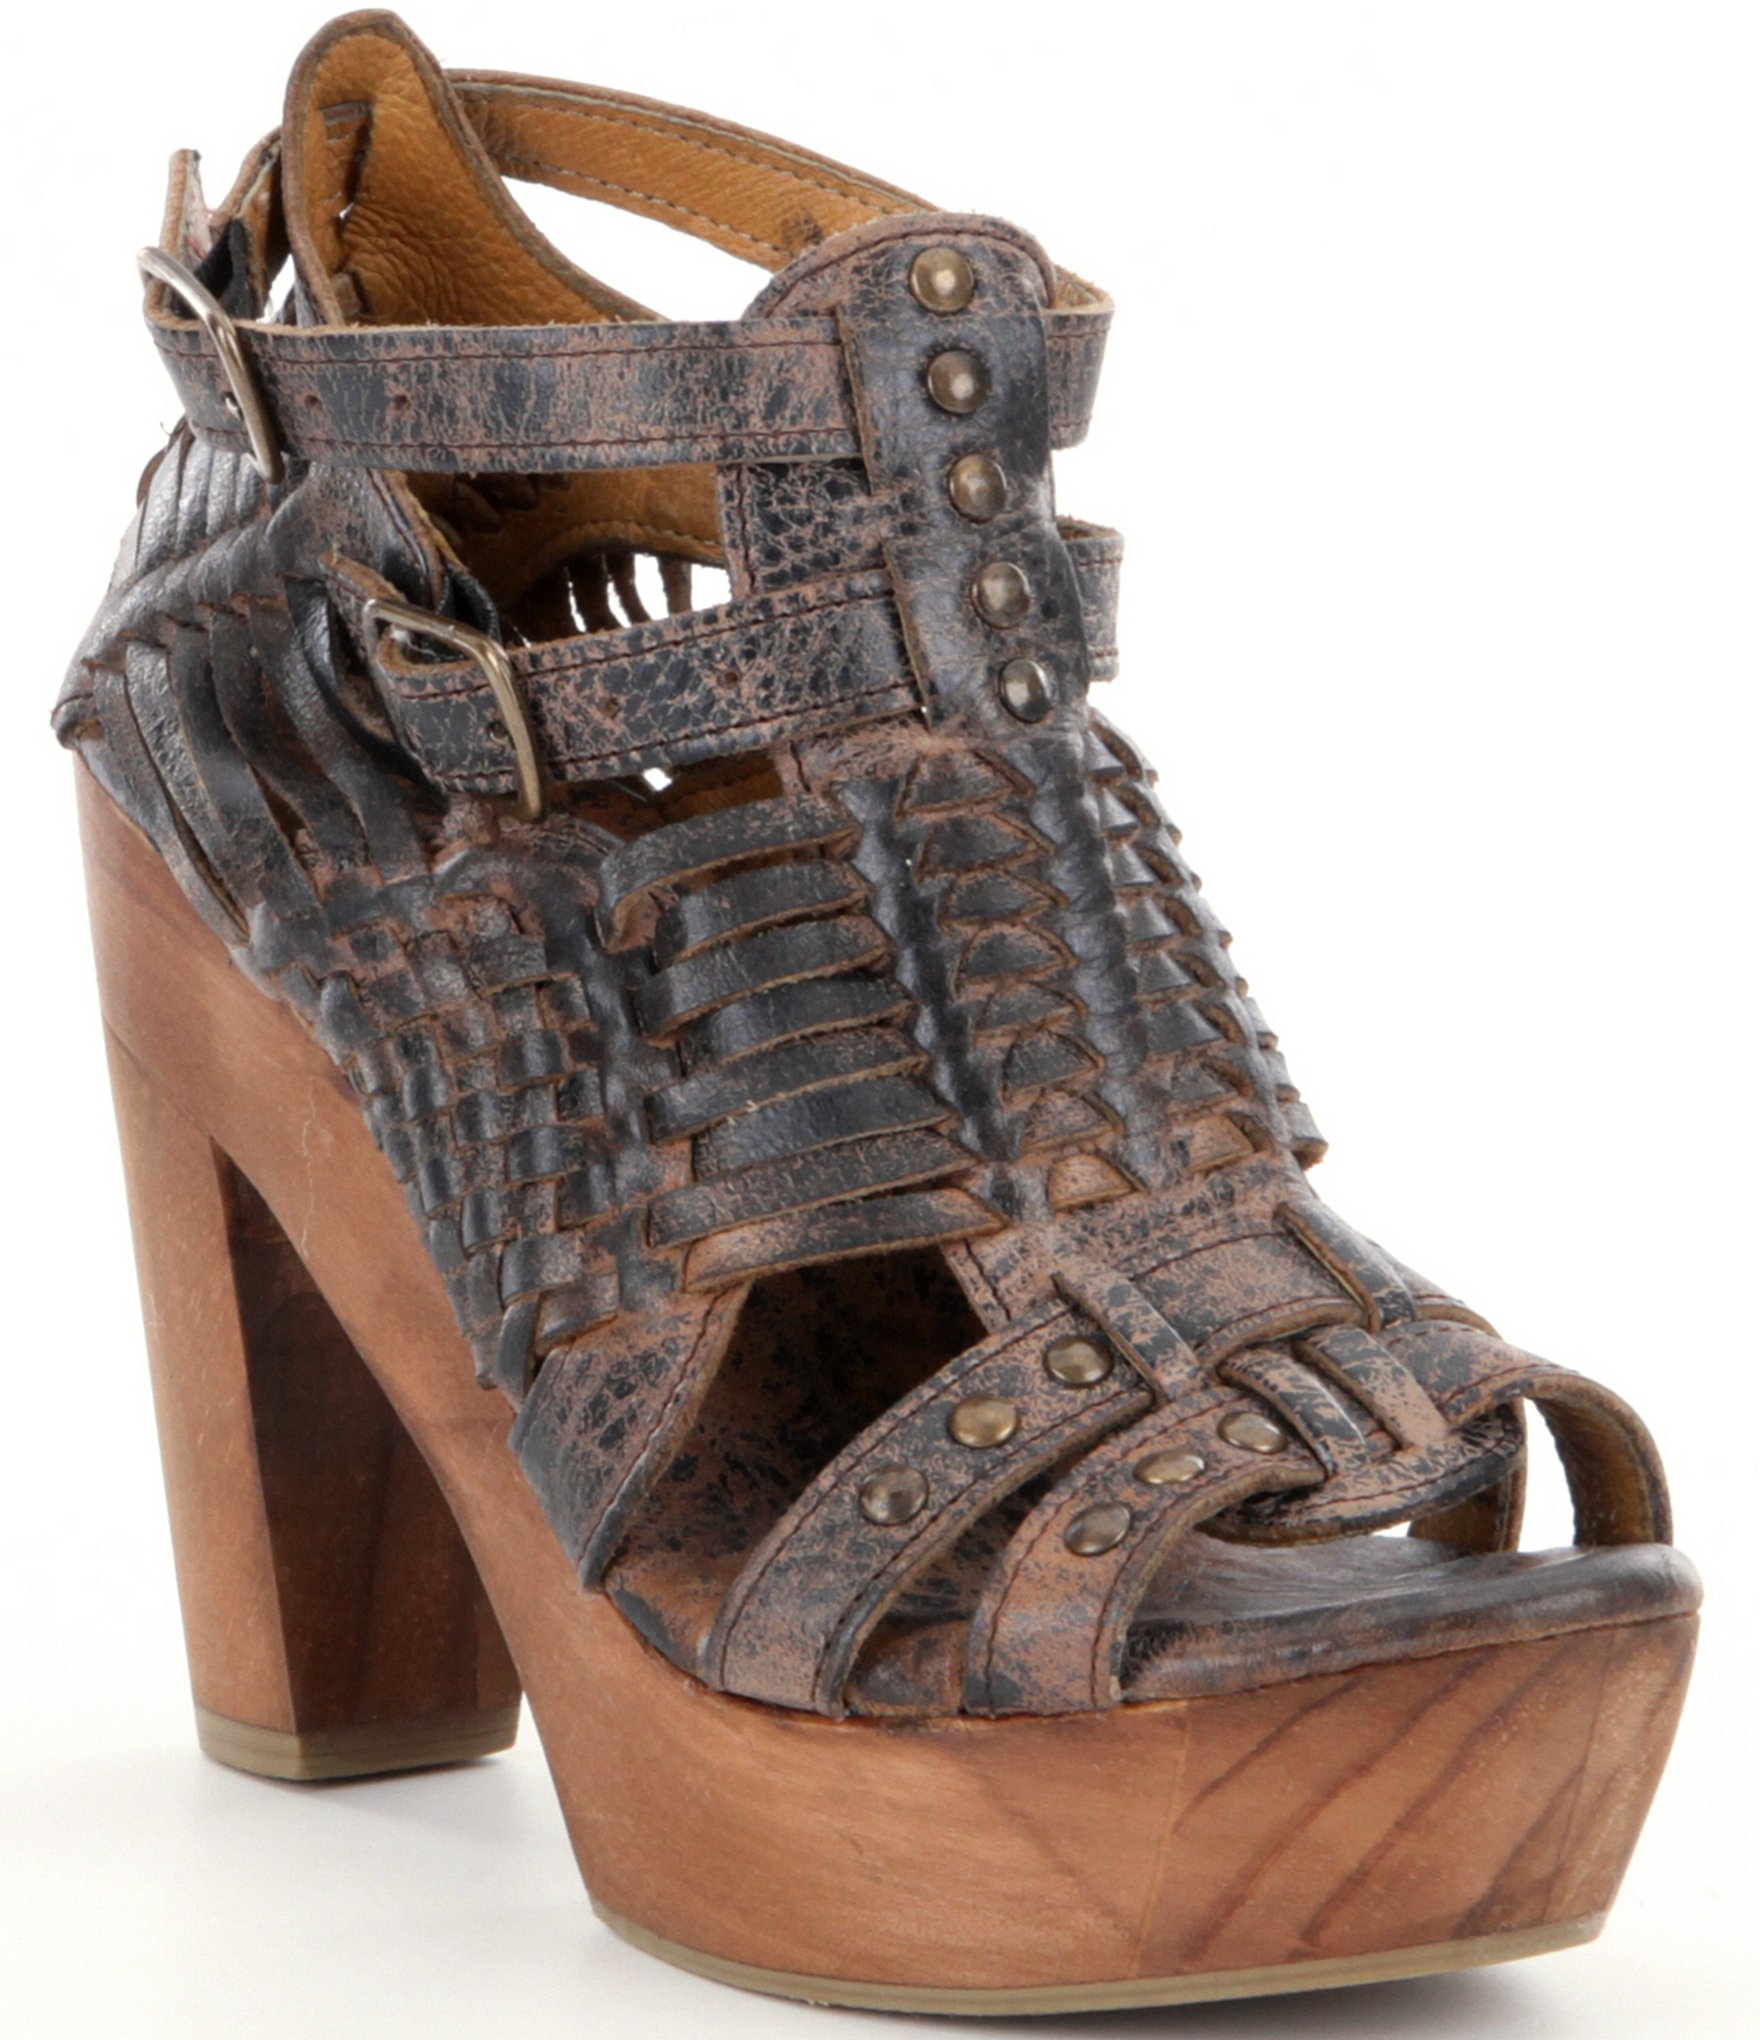 Lyst Bed Stu Cindy Woven Leather Platform Sandals In Brown